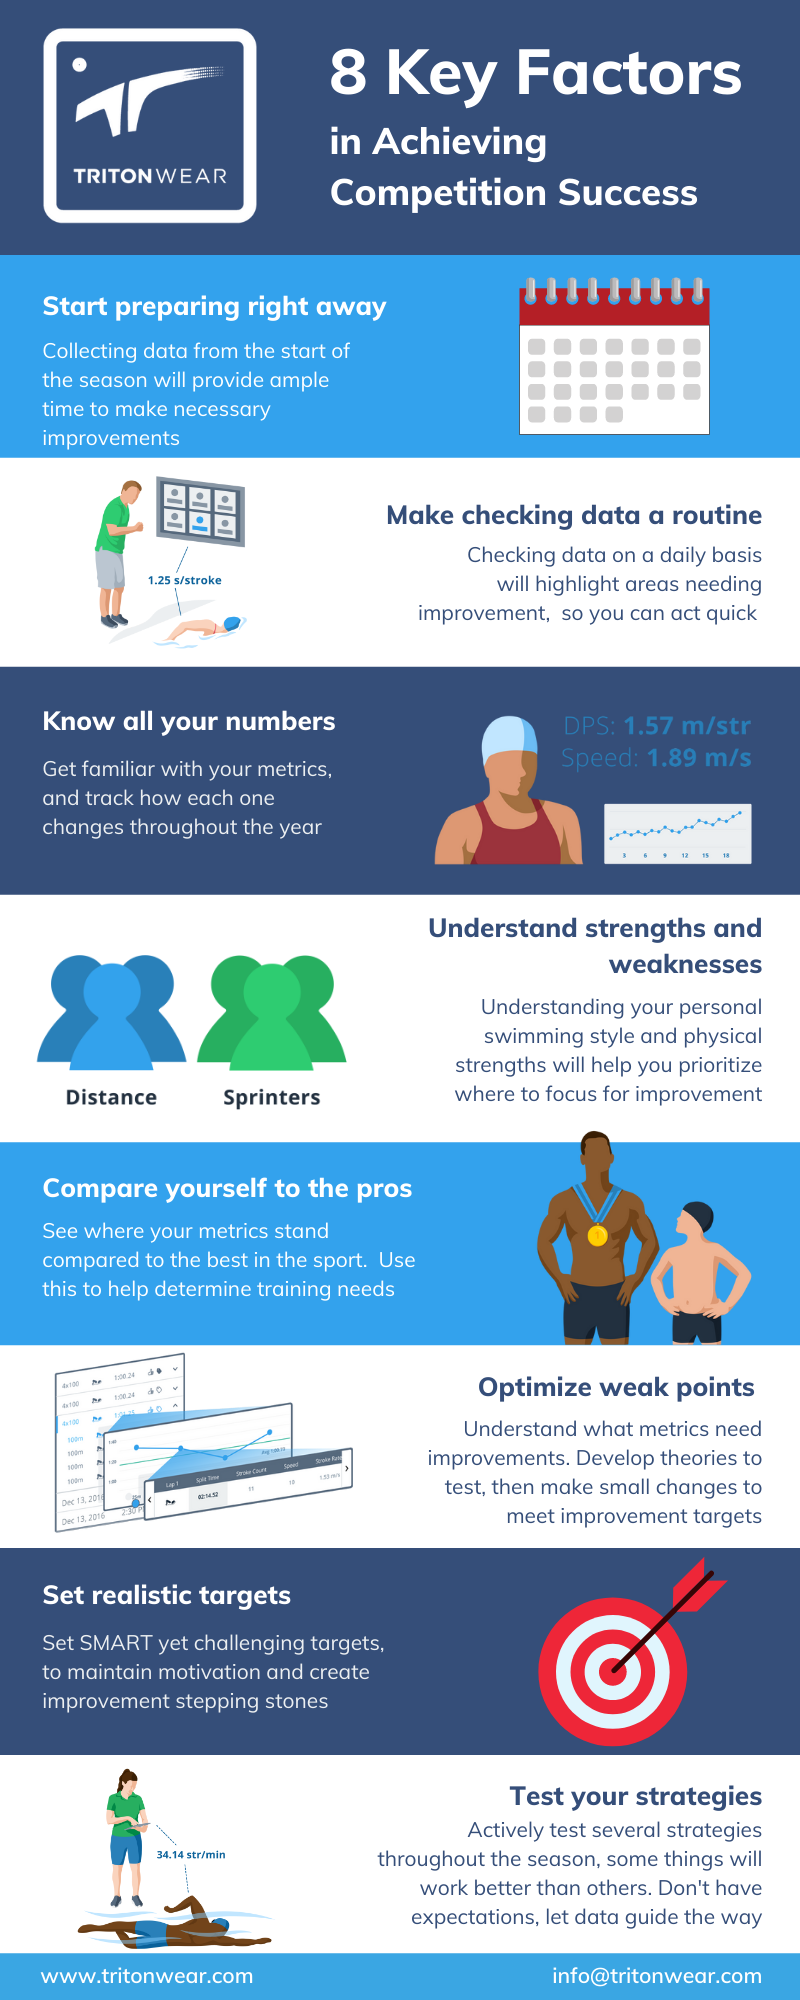 8 Key Factors in Achieving Competition Success - Infographic